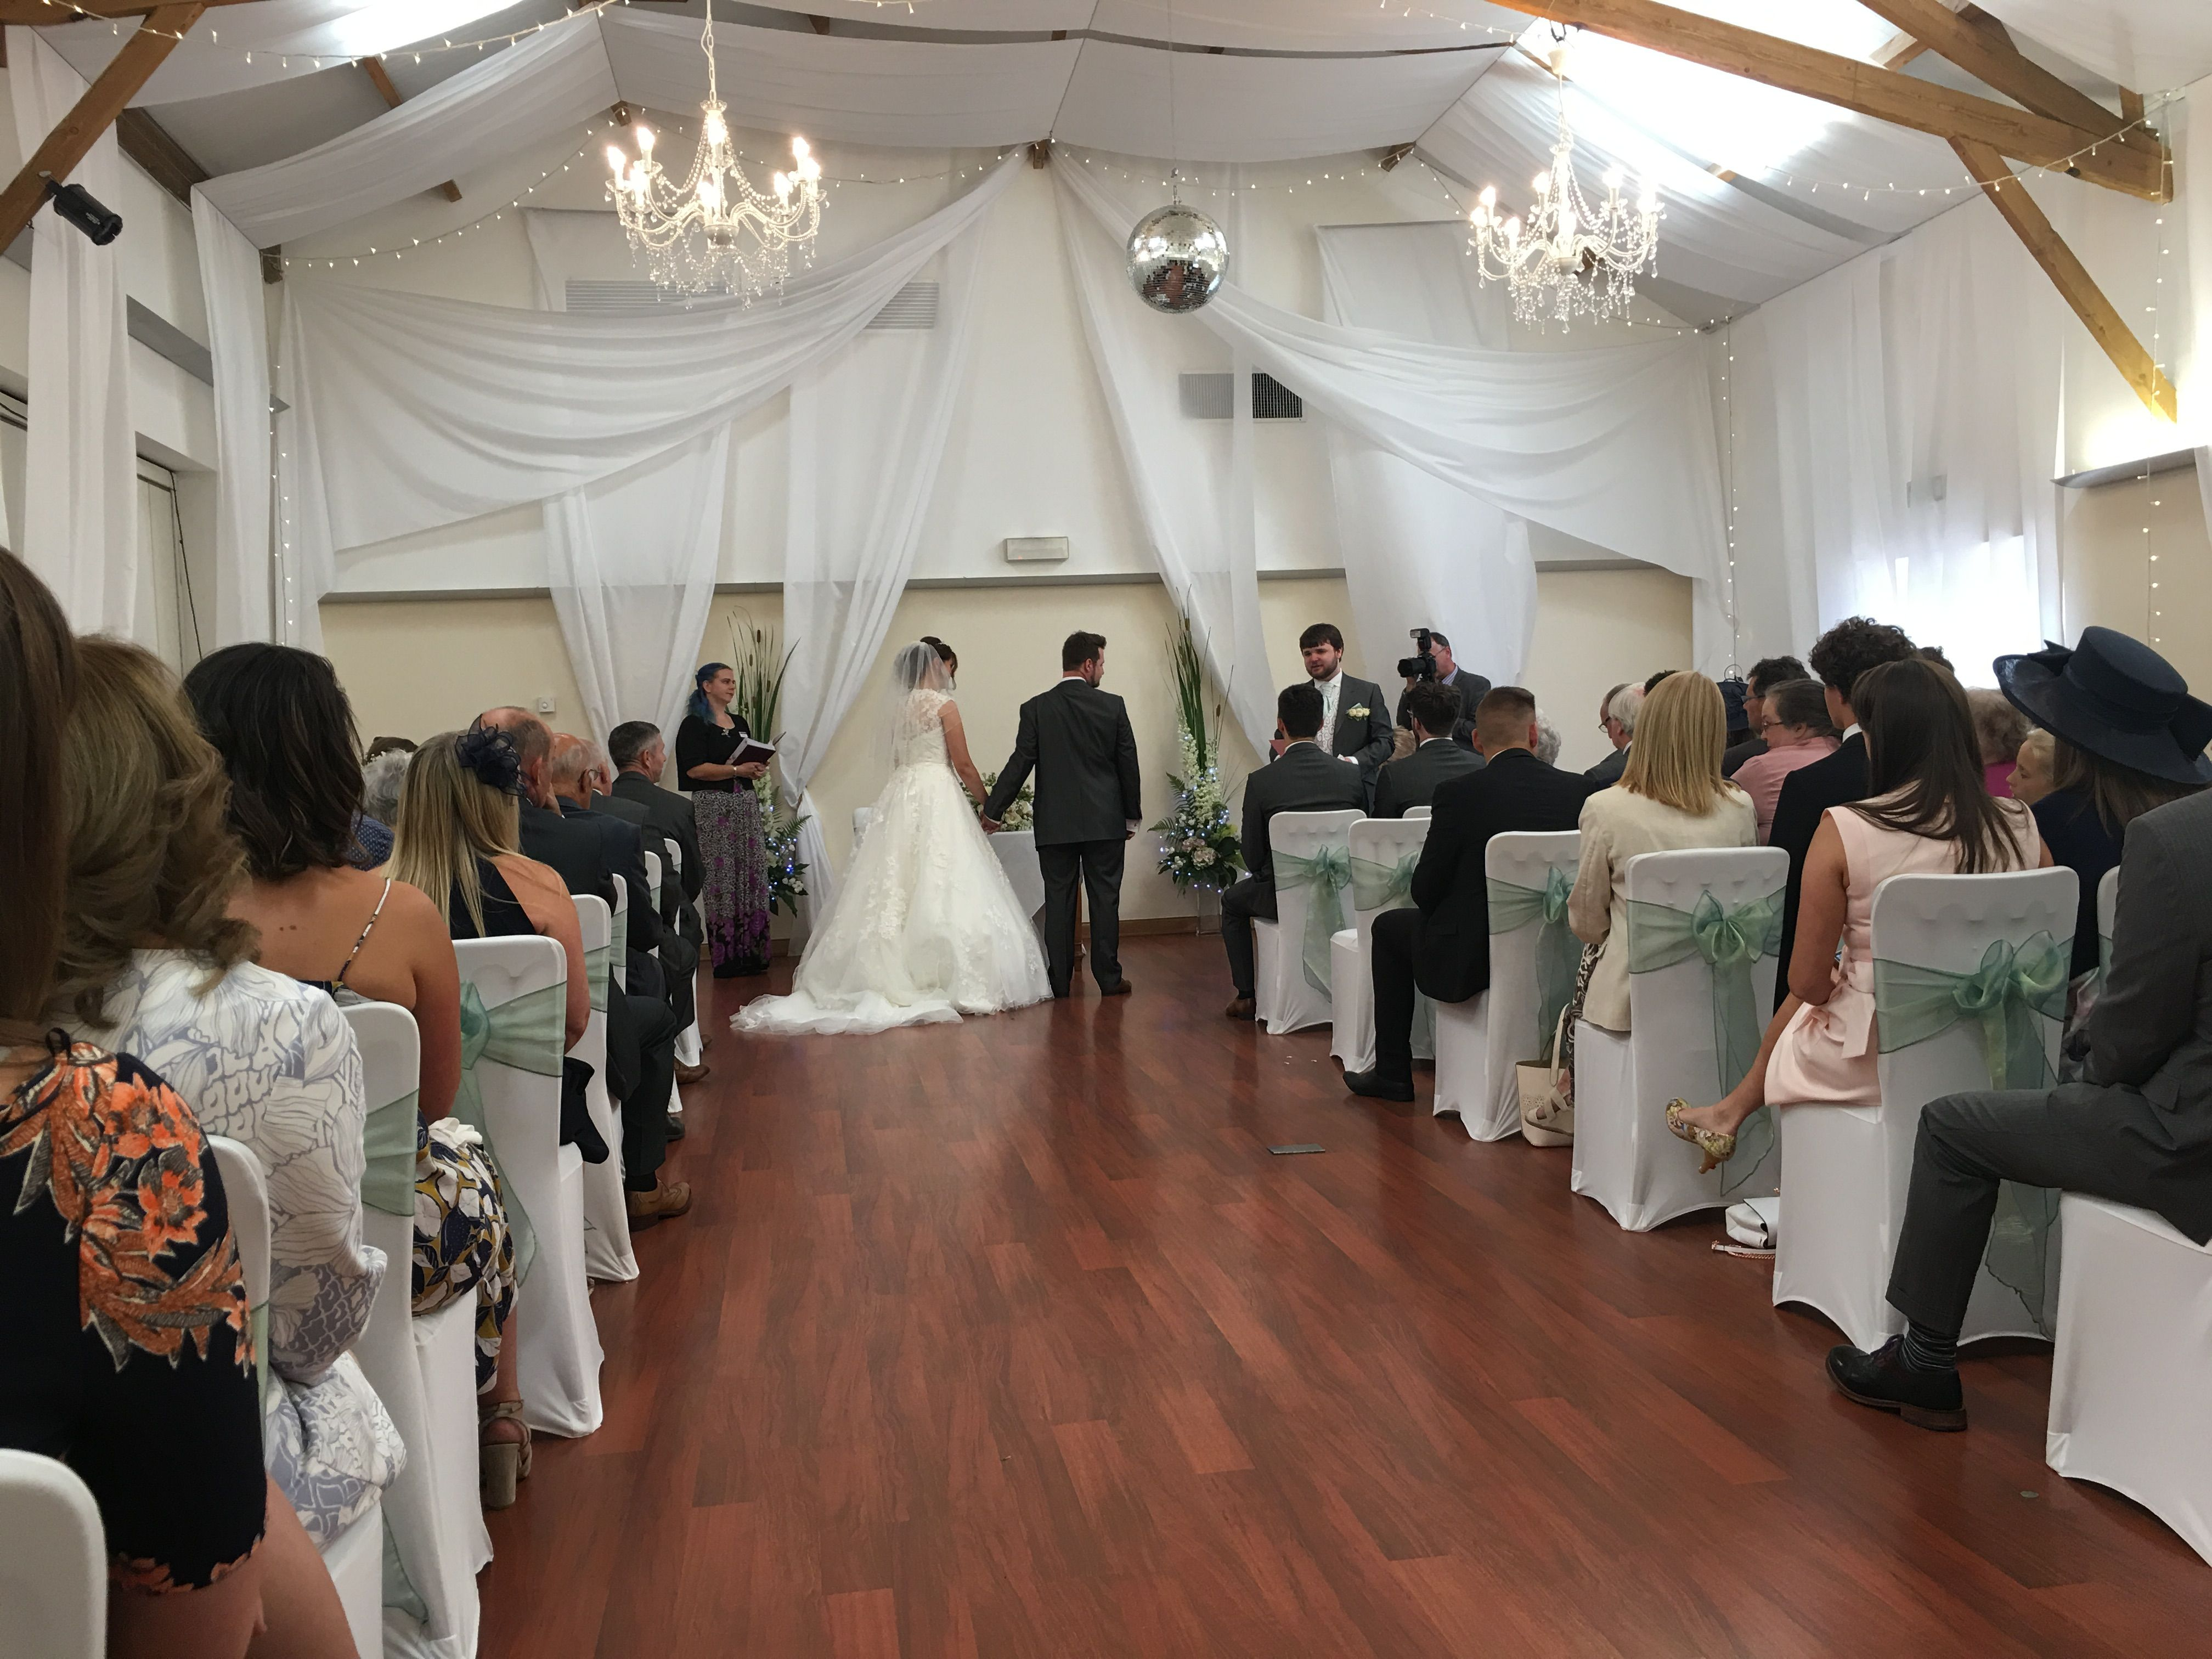 asian wedding photography east midlands%0A Natalie and Danny  wedding at Brampton Grange   Brampton Grange Weddings    Pinterest   Wedding and Wedding